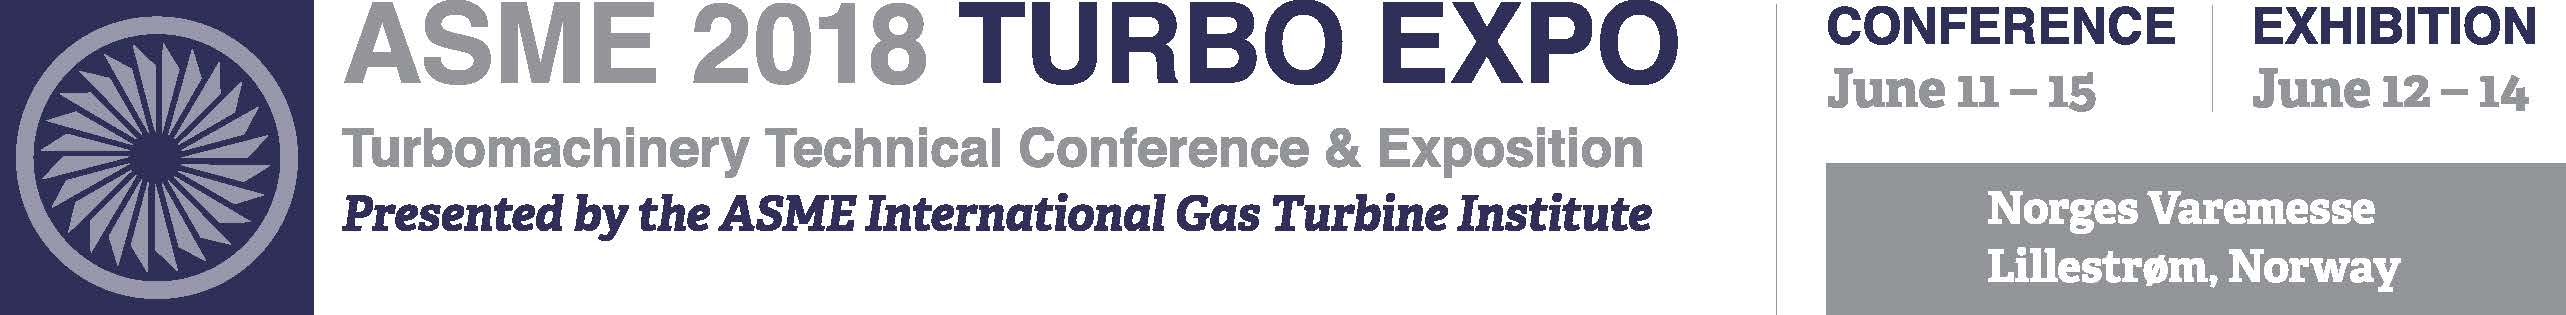 Asme Turbo Expo 2018 >> Aerodyn Will Be Exhibiting Again This Year At Asme Turbo Expo In